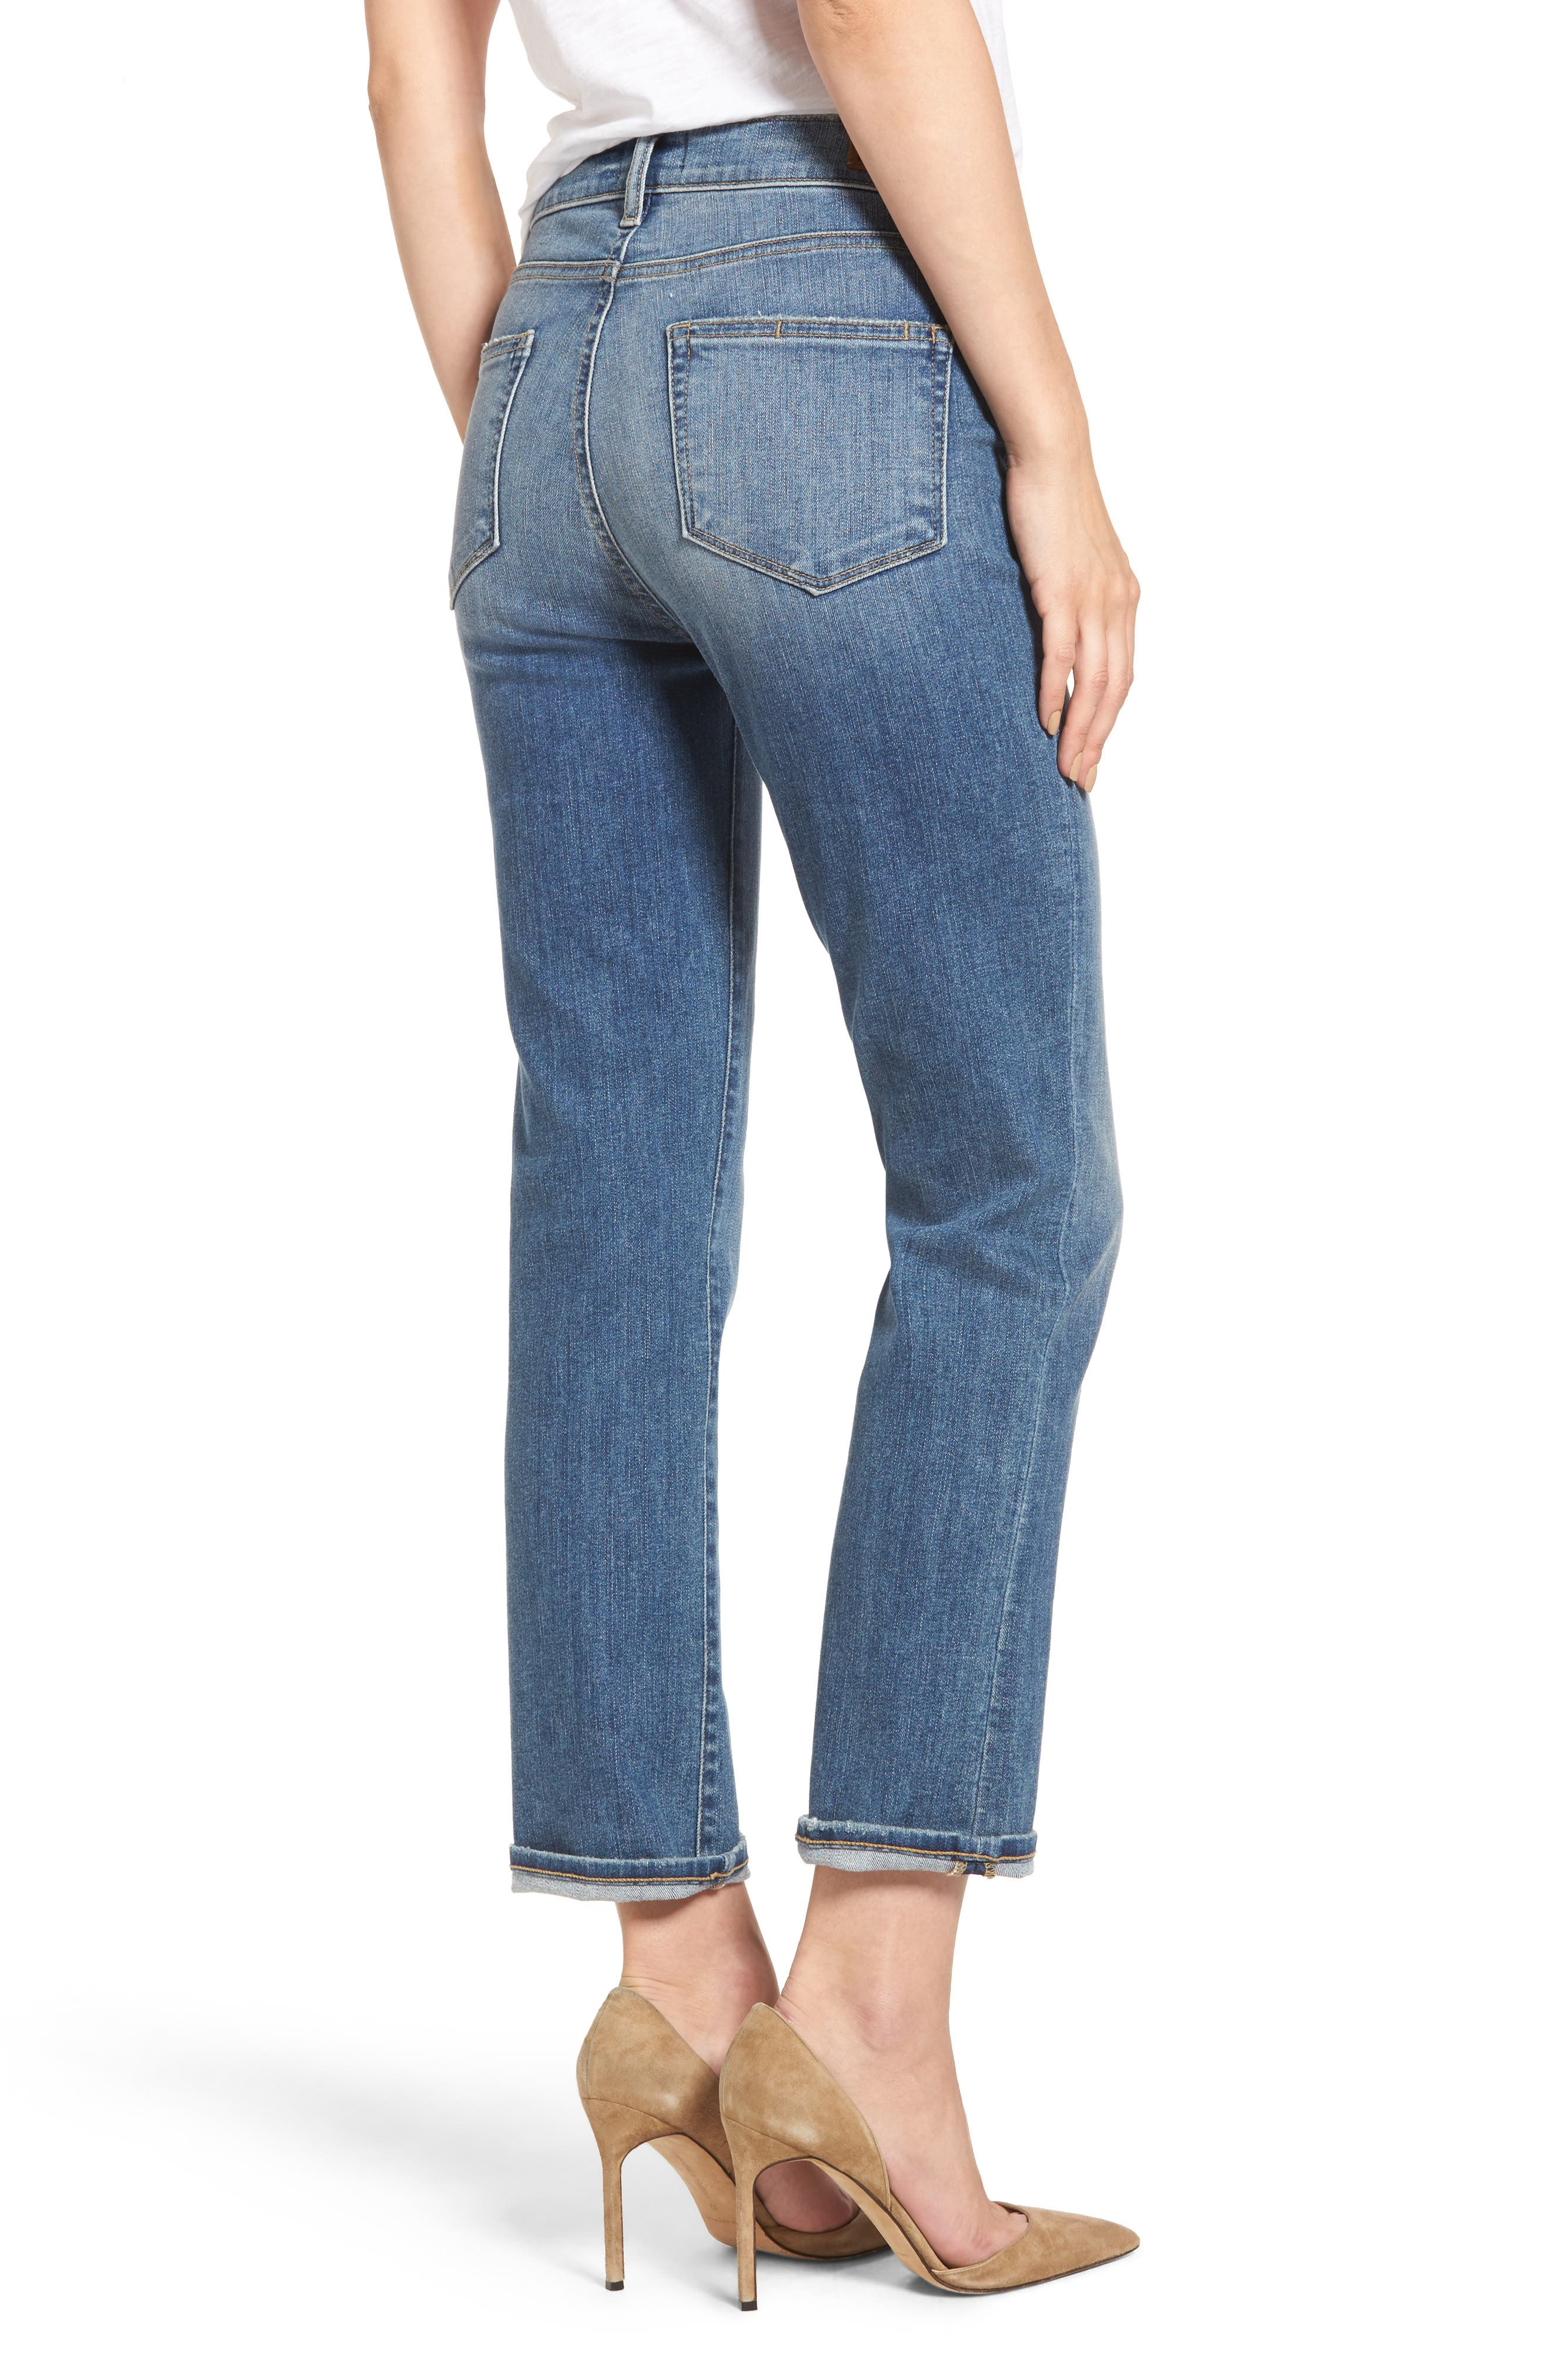 Transcend Vintage - Jacqueline High Waist Ankle Straight Leg Jeans,                             Alternate thumbnail 2, color,                             400